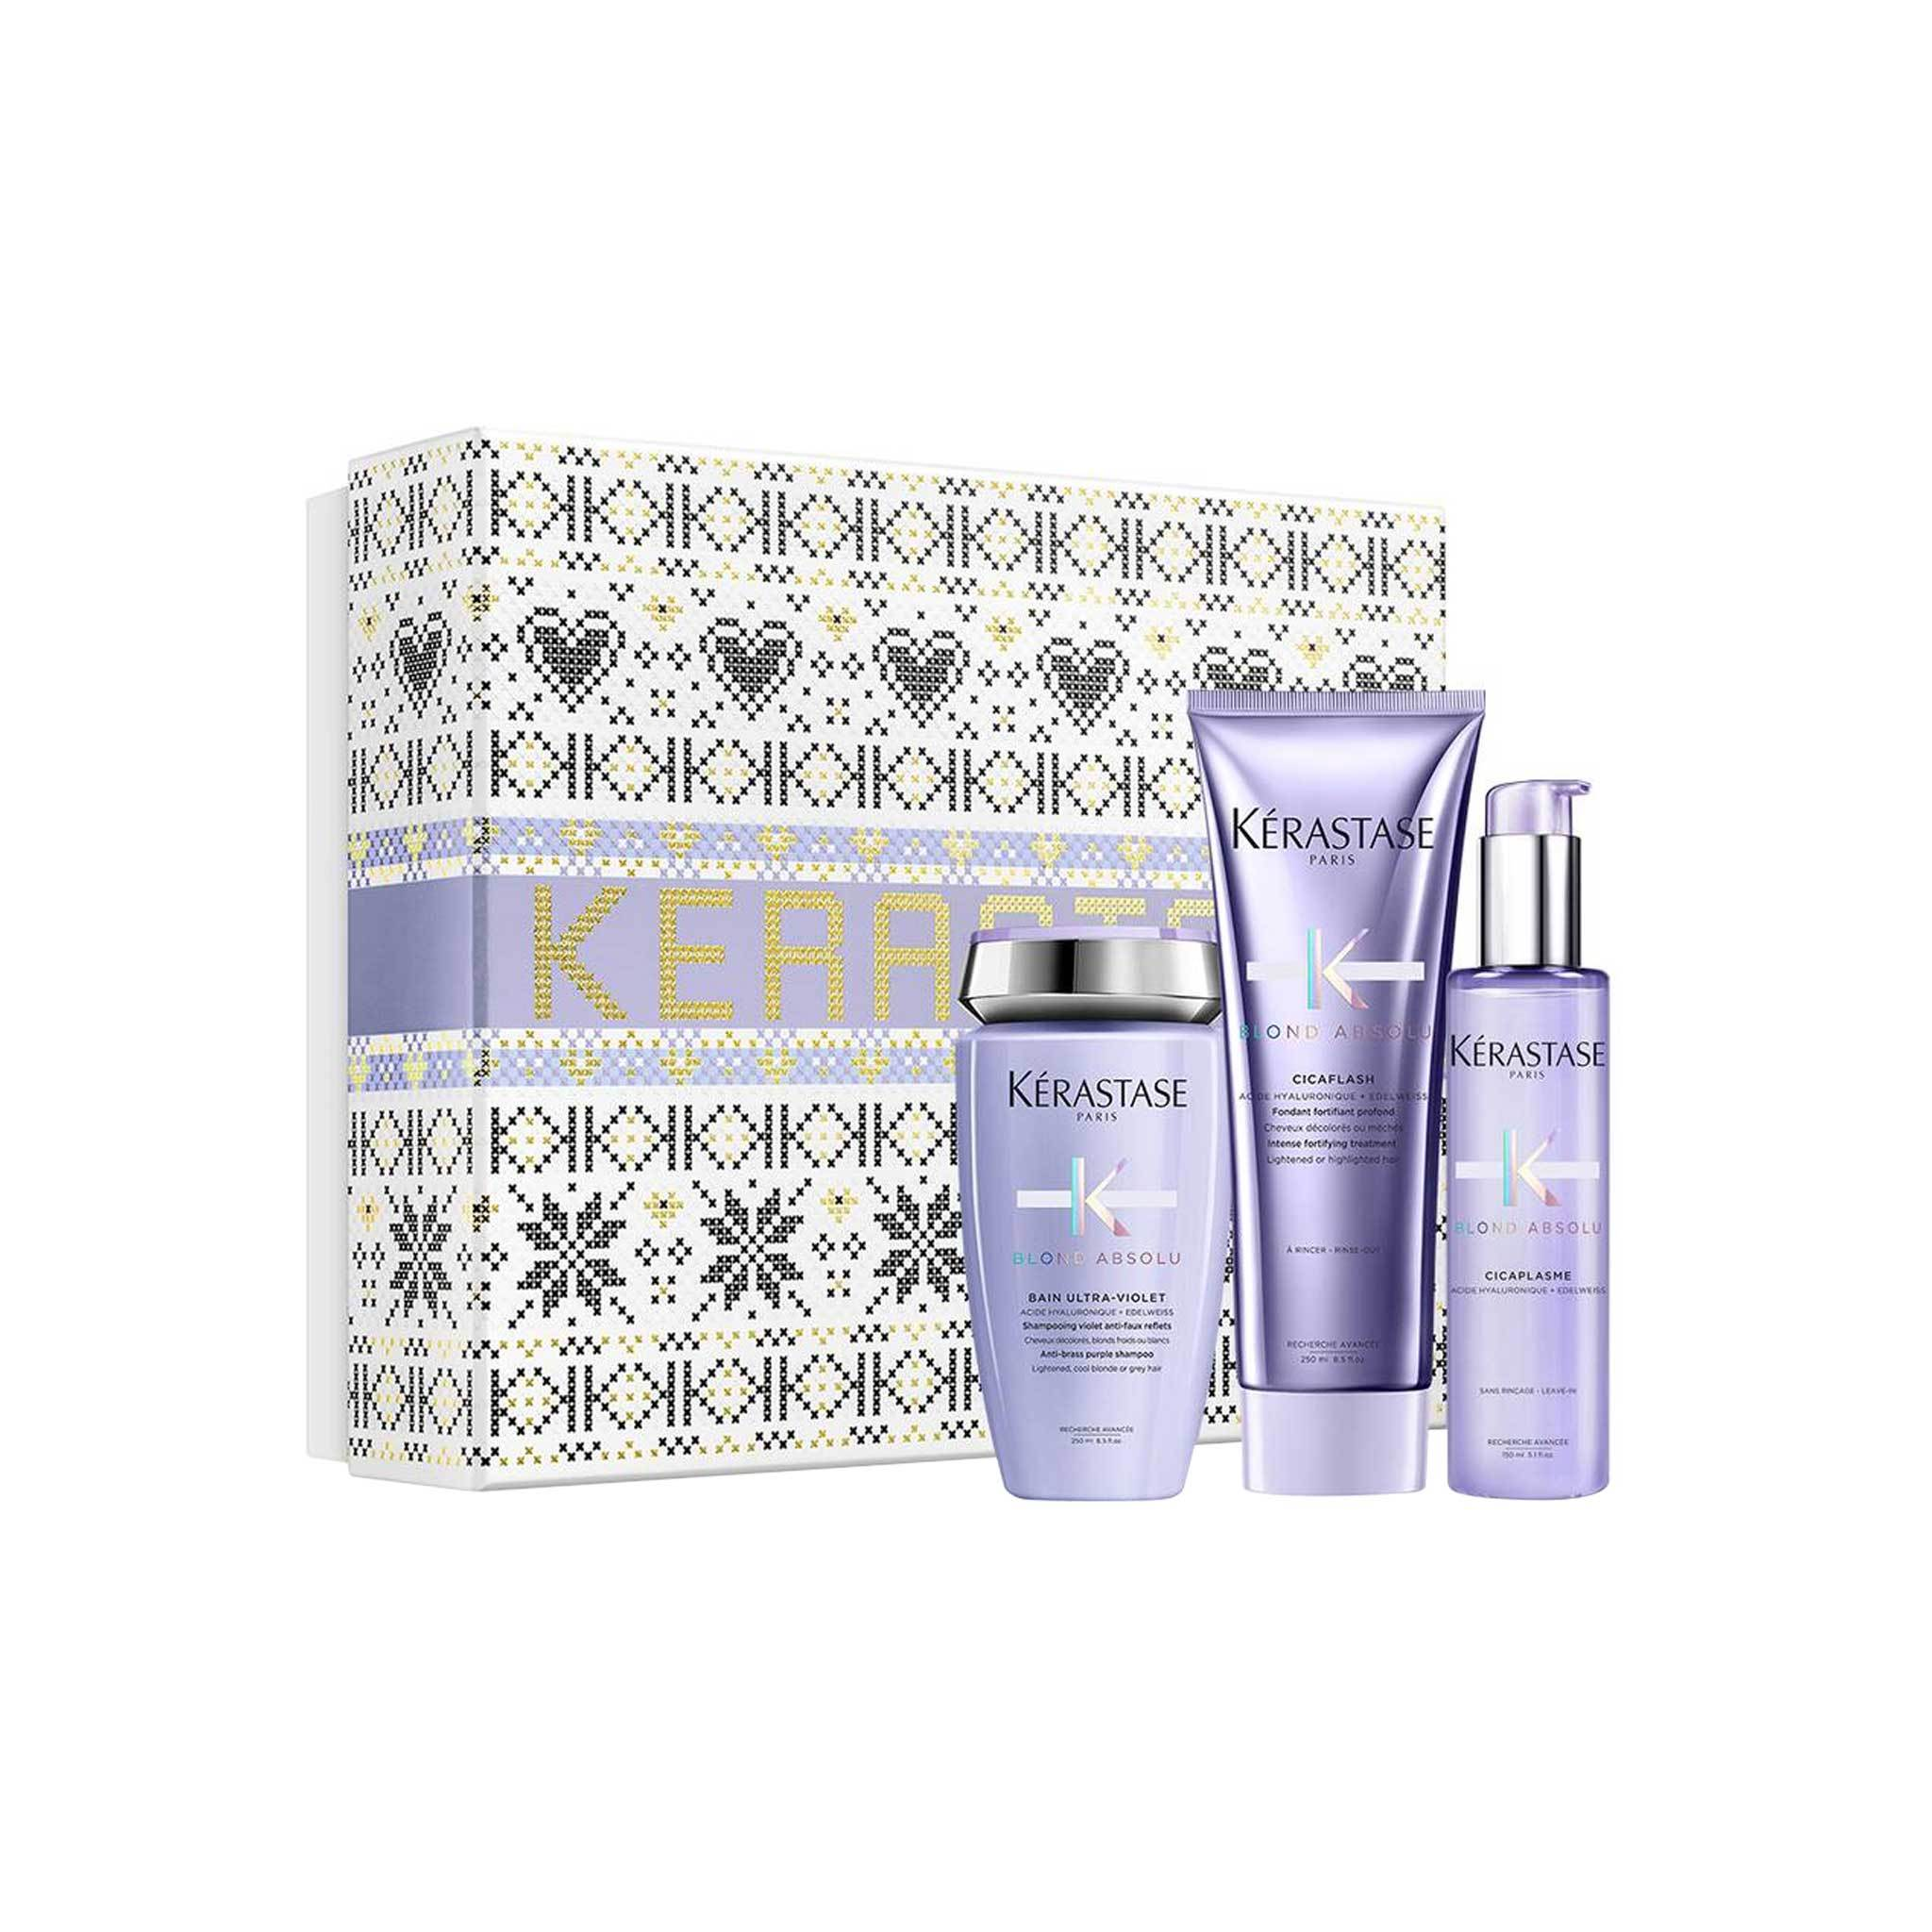 Kerastase Luxury Blond Absolut Gift Set